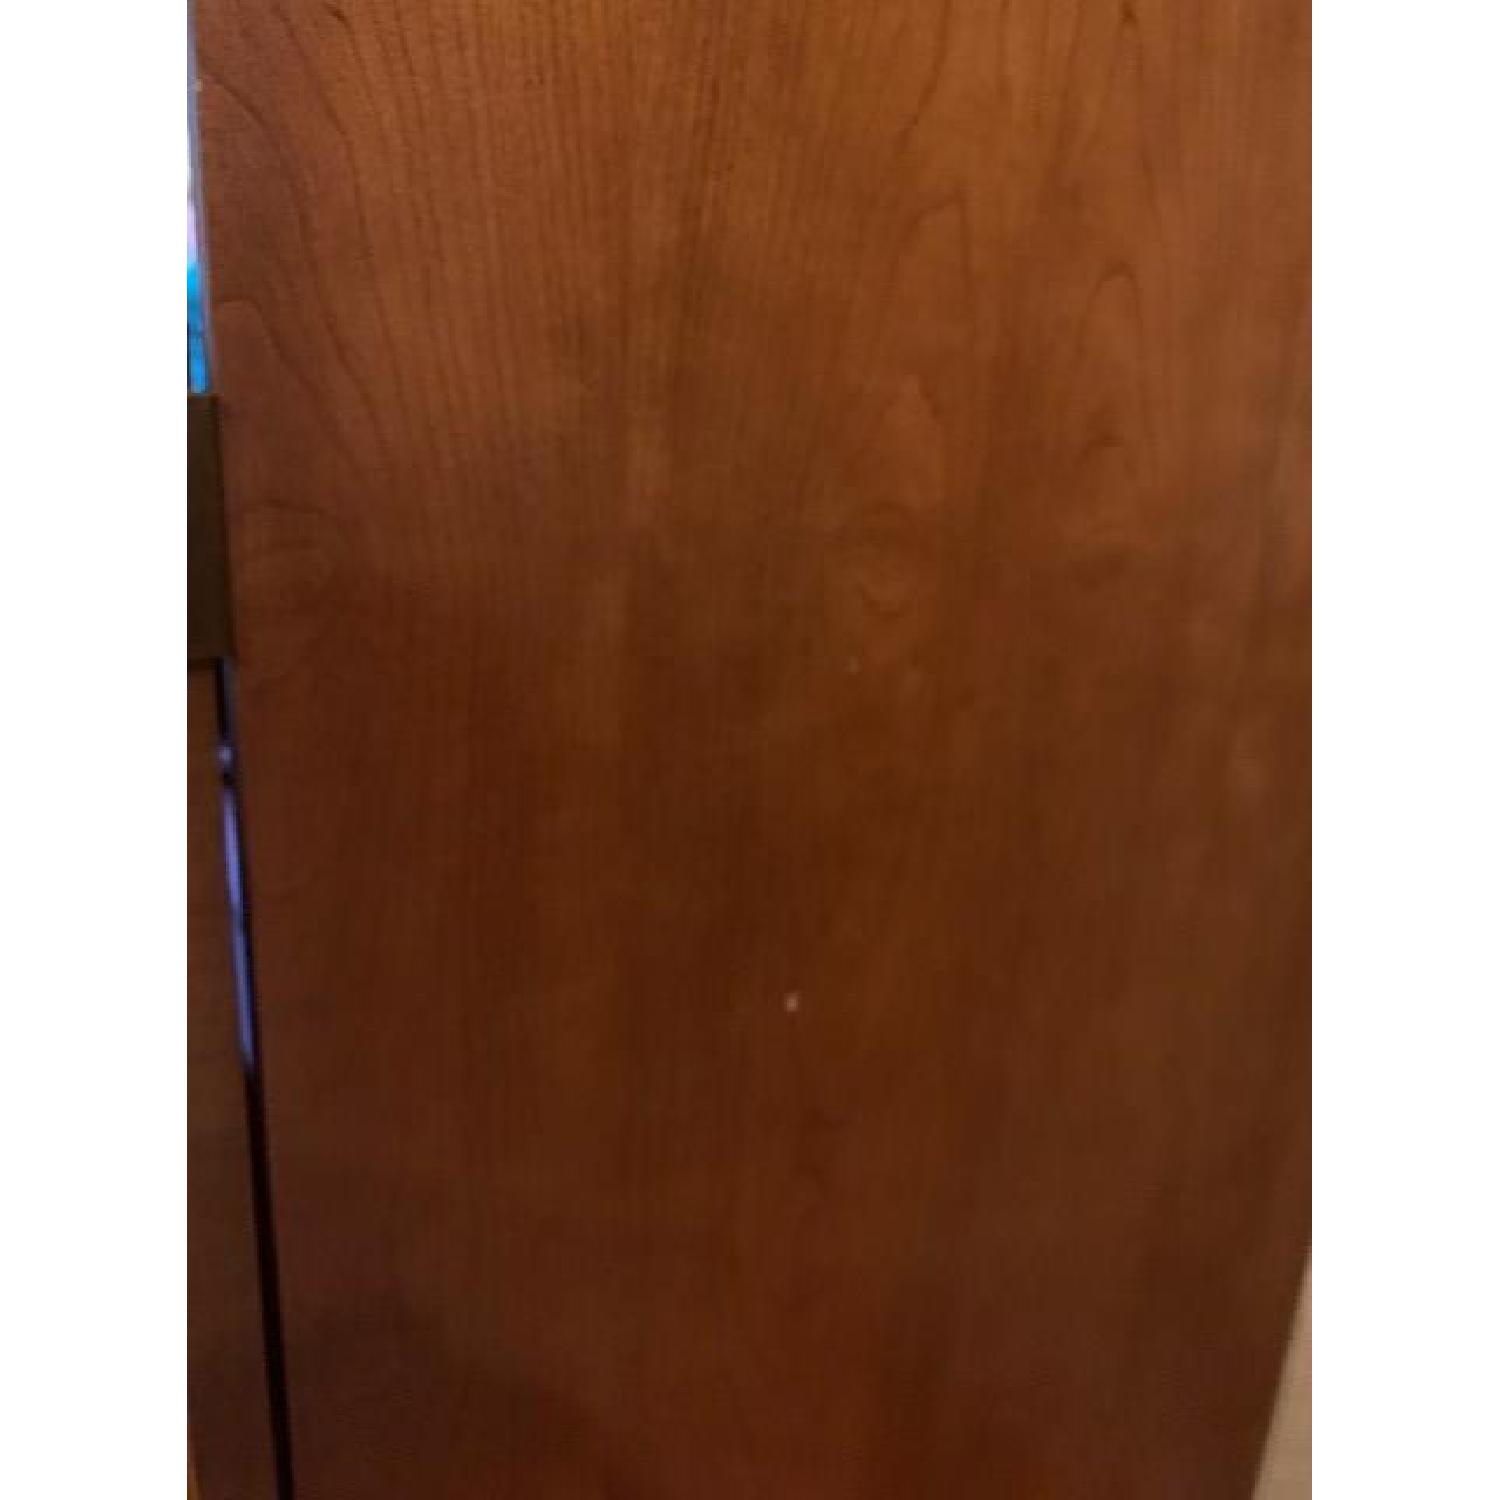 Hooker Furniture Media Cabinet/Armoire in Mahogany Finish - image-13